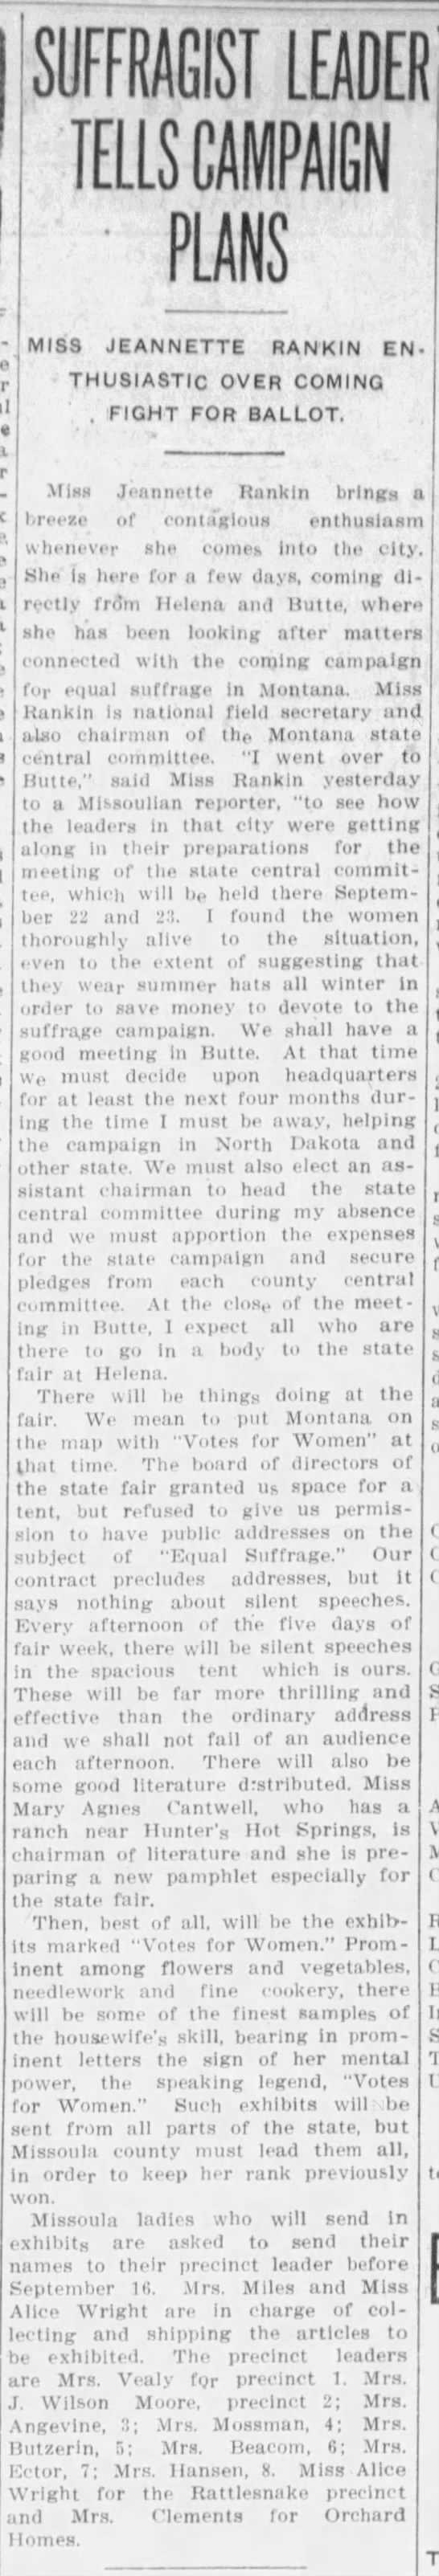 Jeannette Rankin Leads Suffrage Movement in Montana -